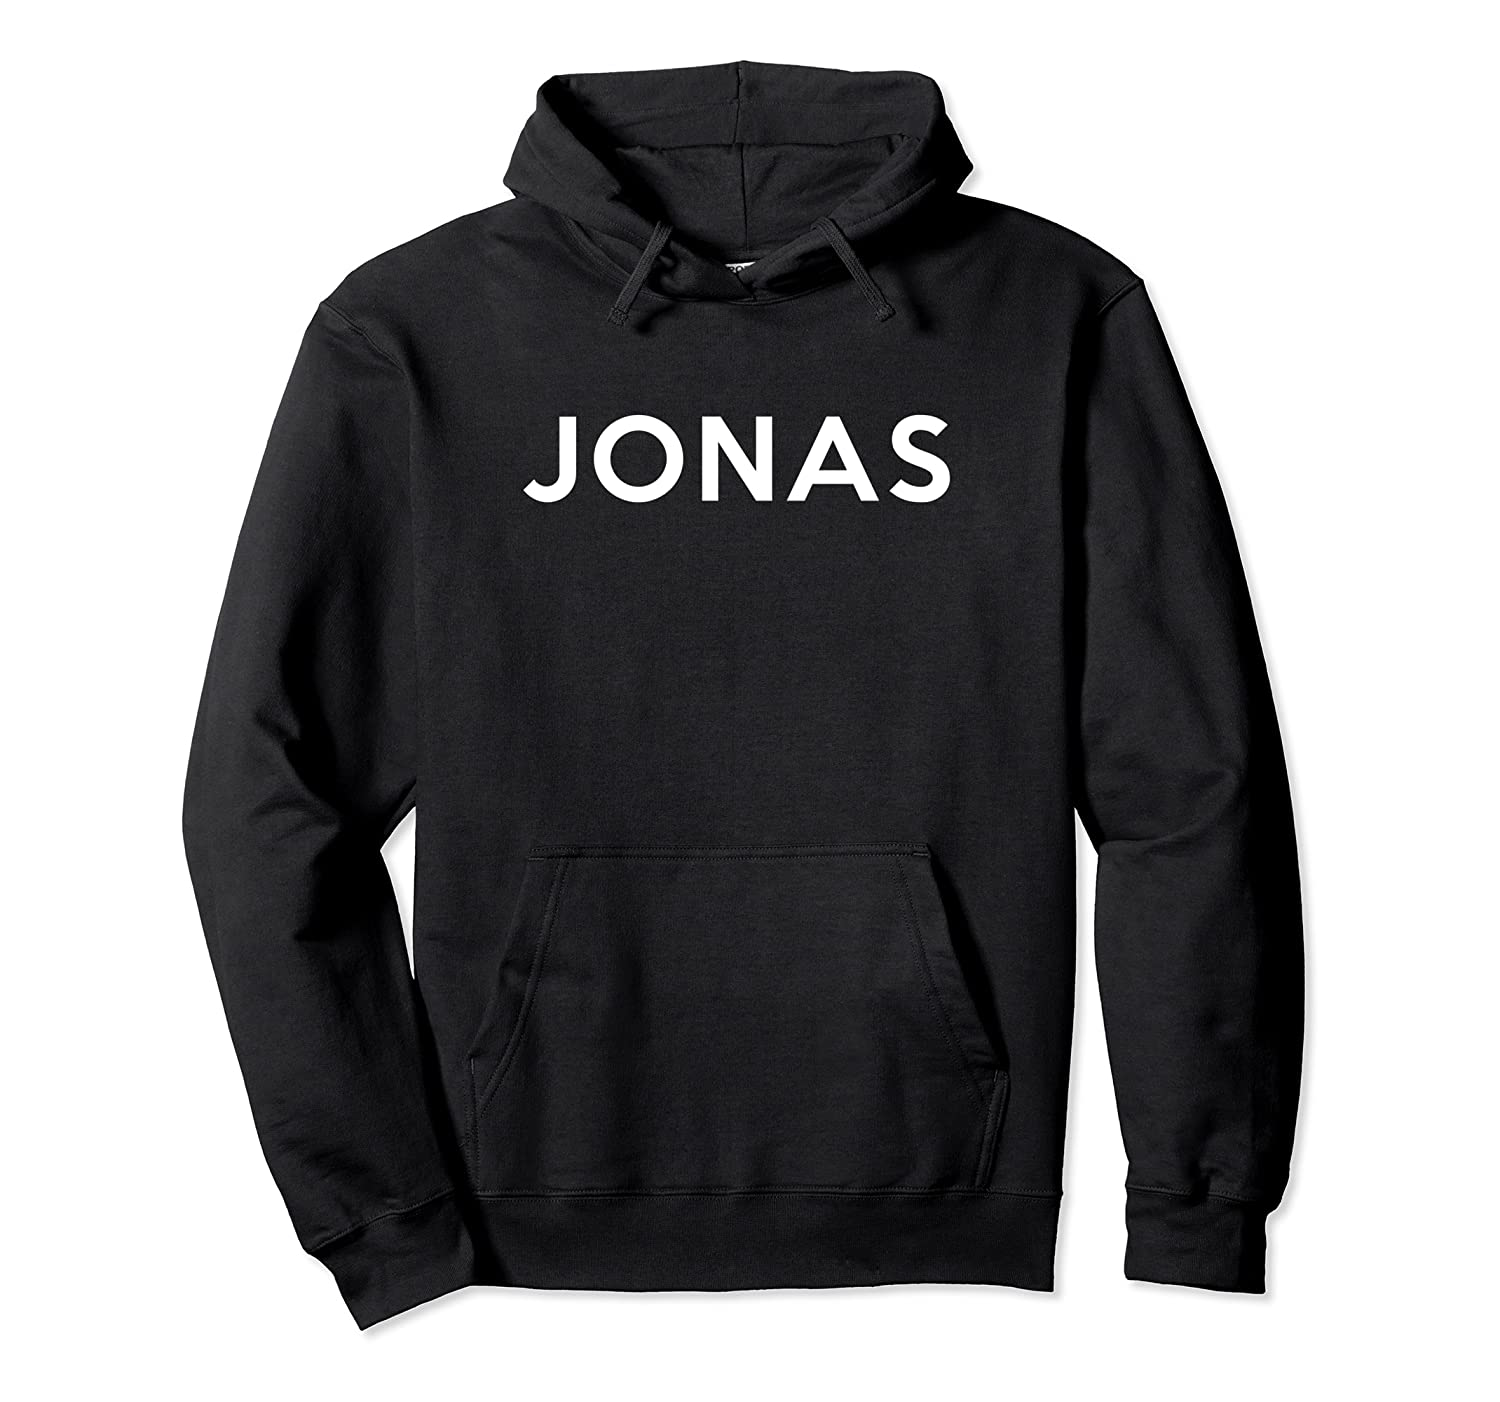 Jonas First Given Name Pride Funny The Original T Shirt Unisex Pullover Hoodie